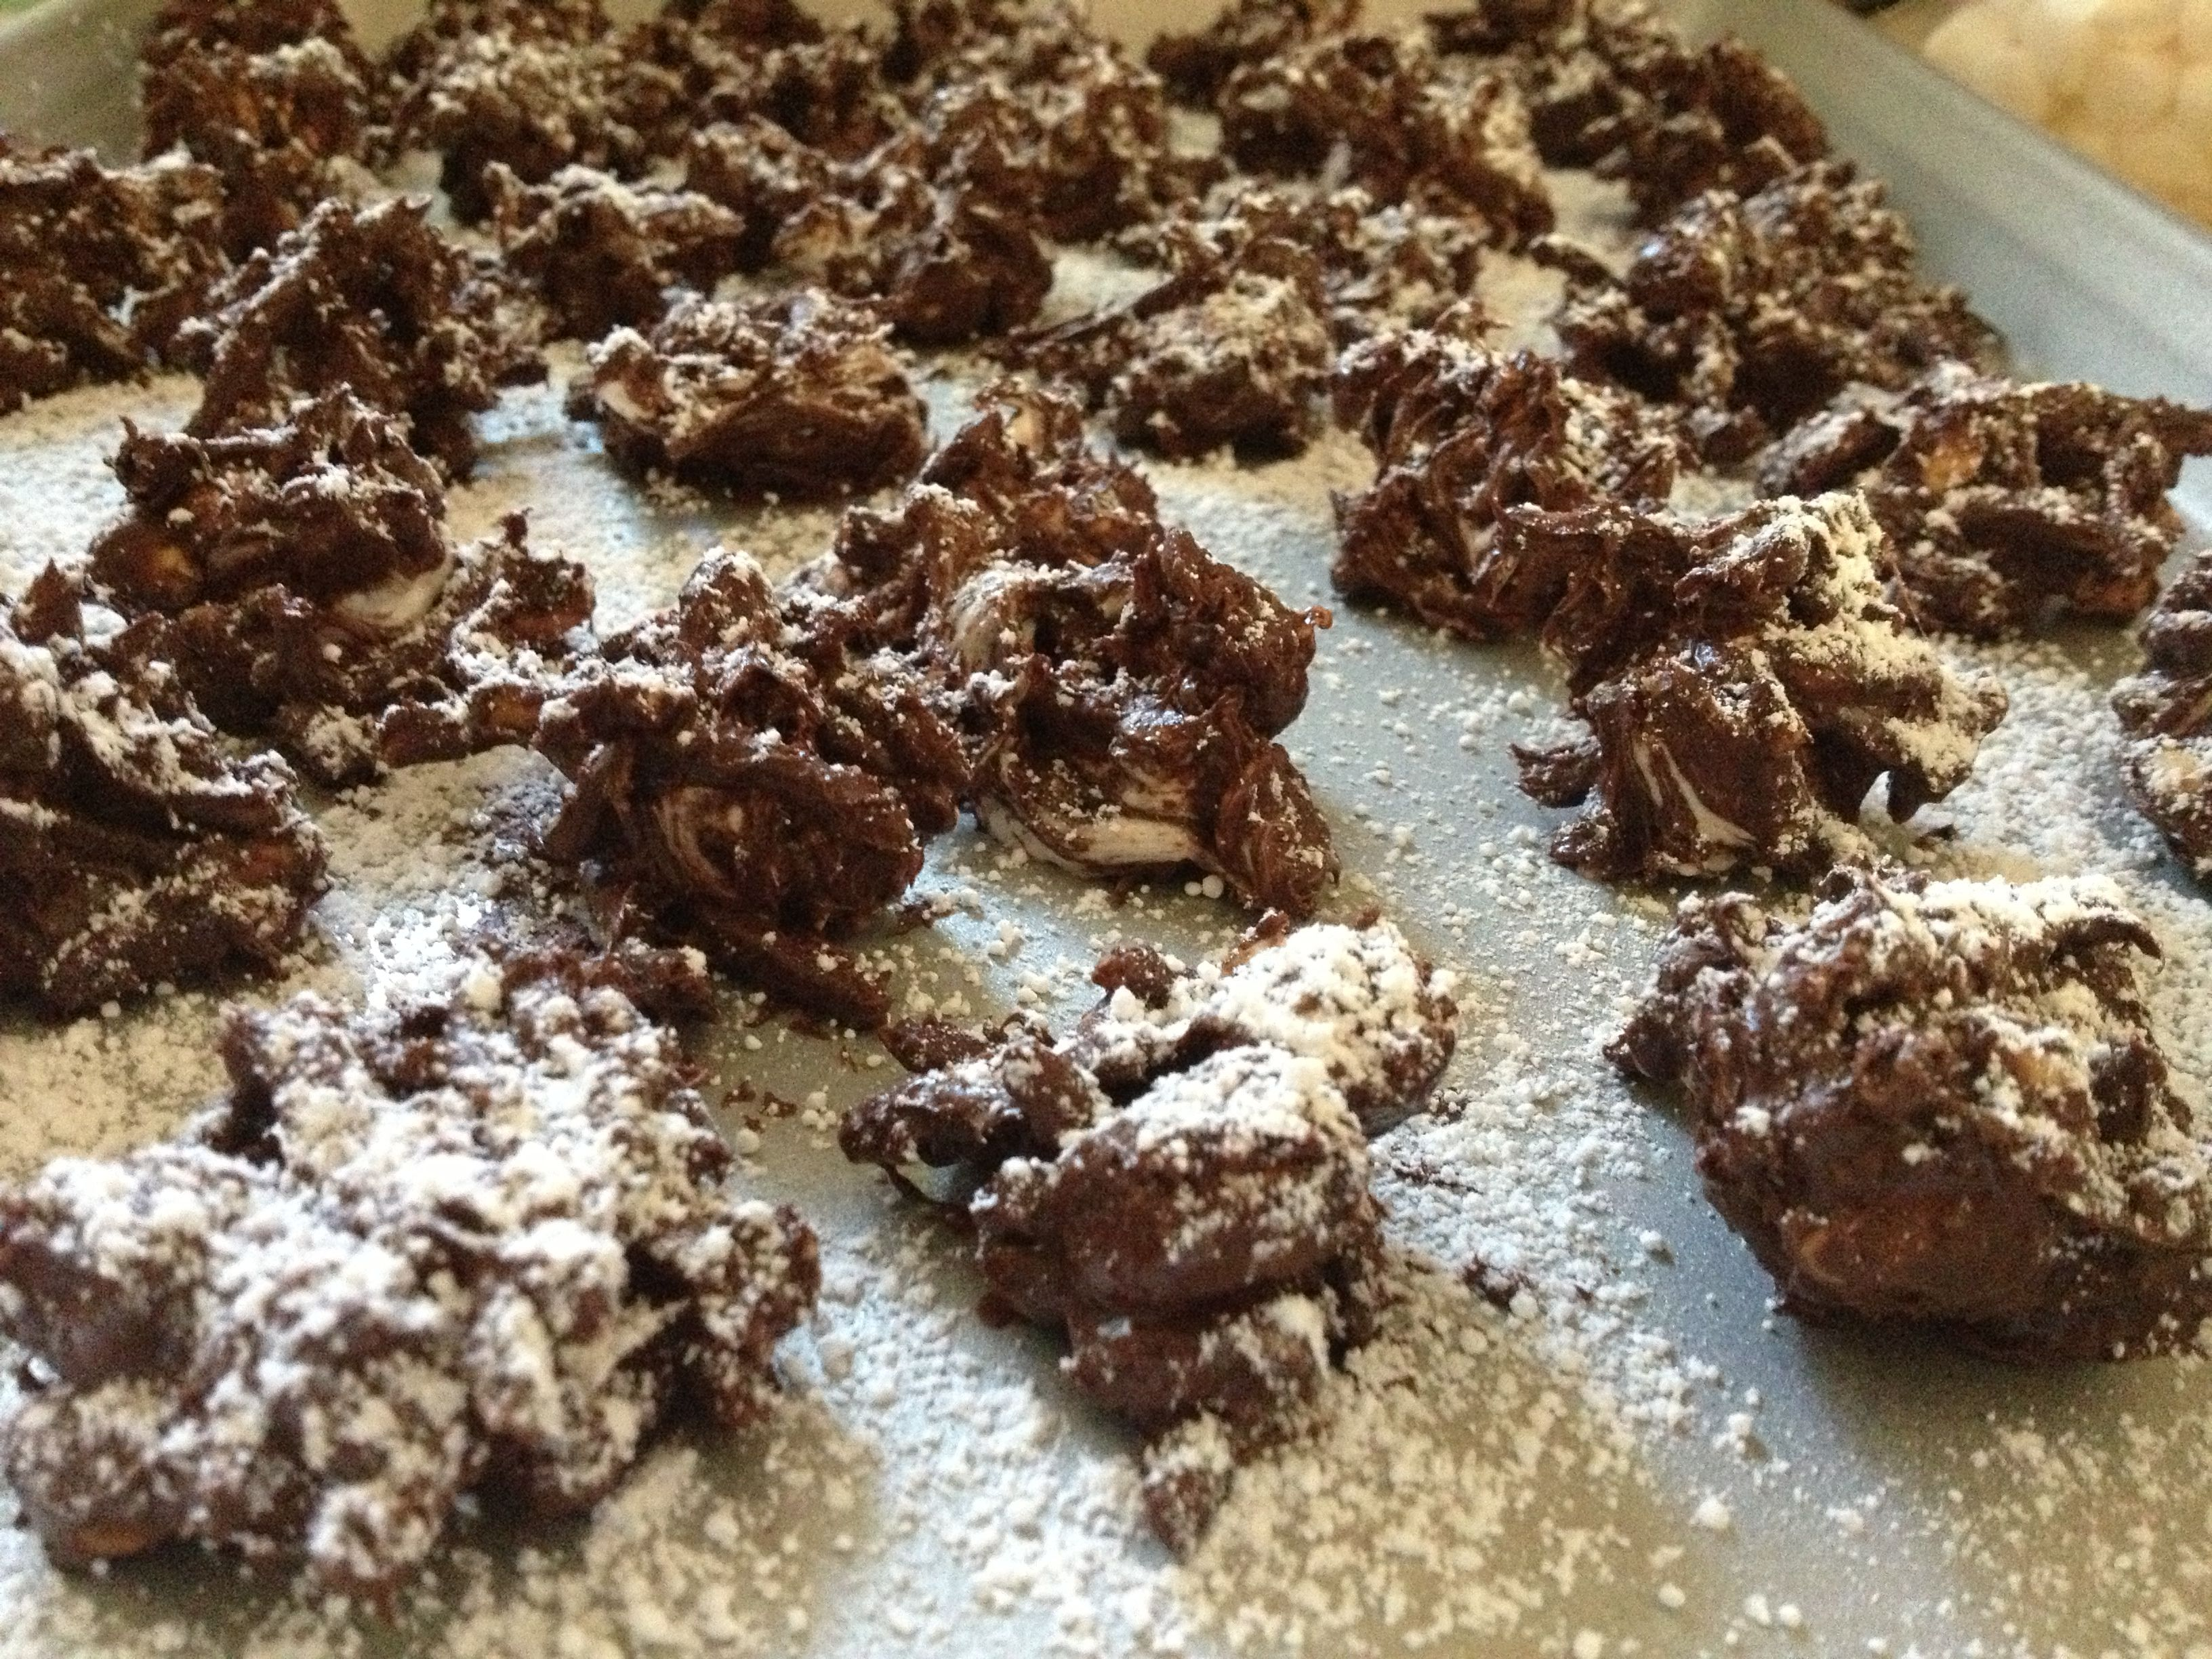 raindeer droppings a cooley holiday classic semi sweet